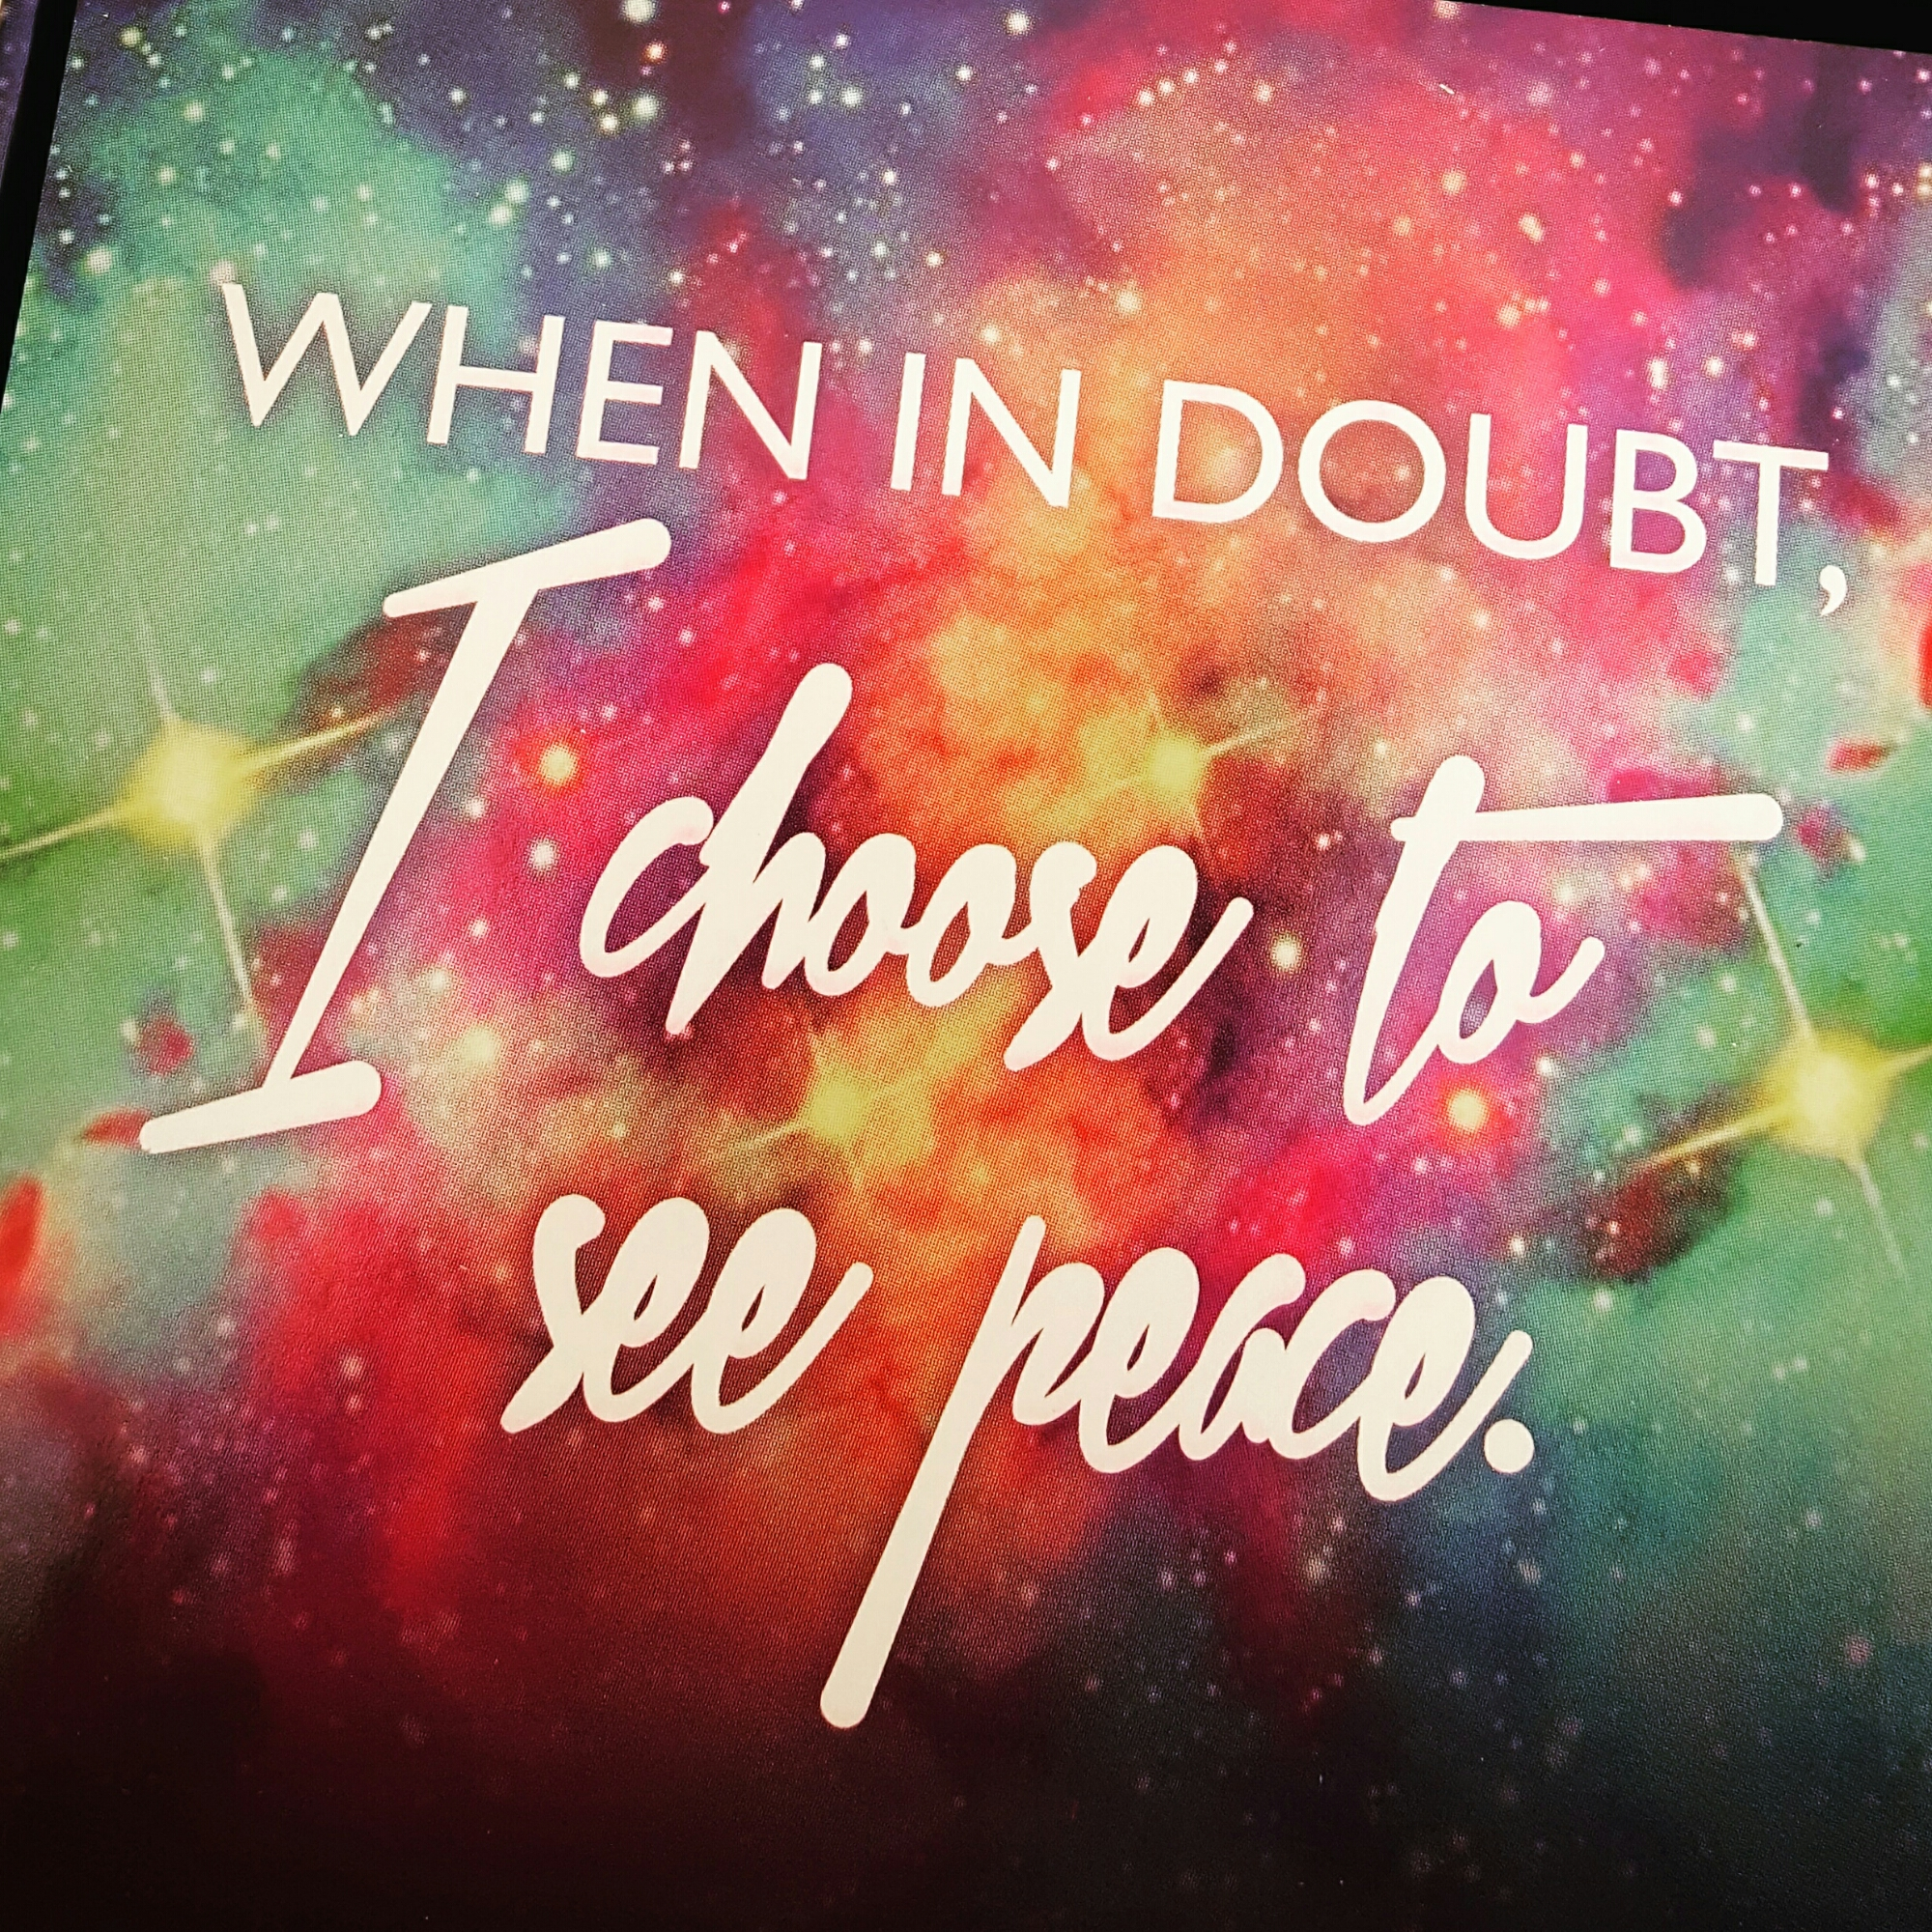 When in doubt I choose to see peace - Miracle Now